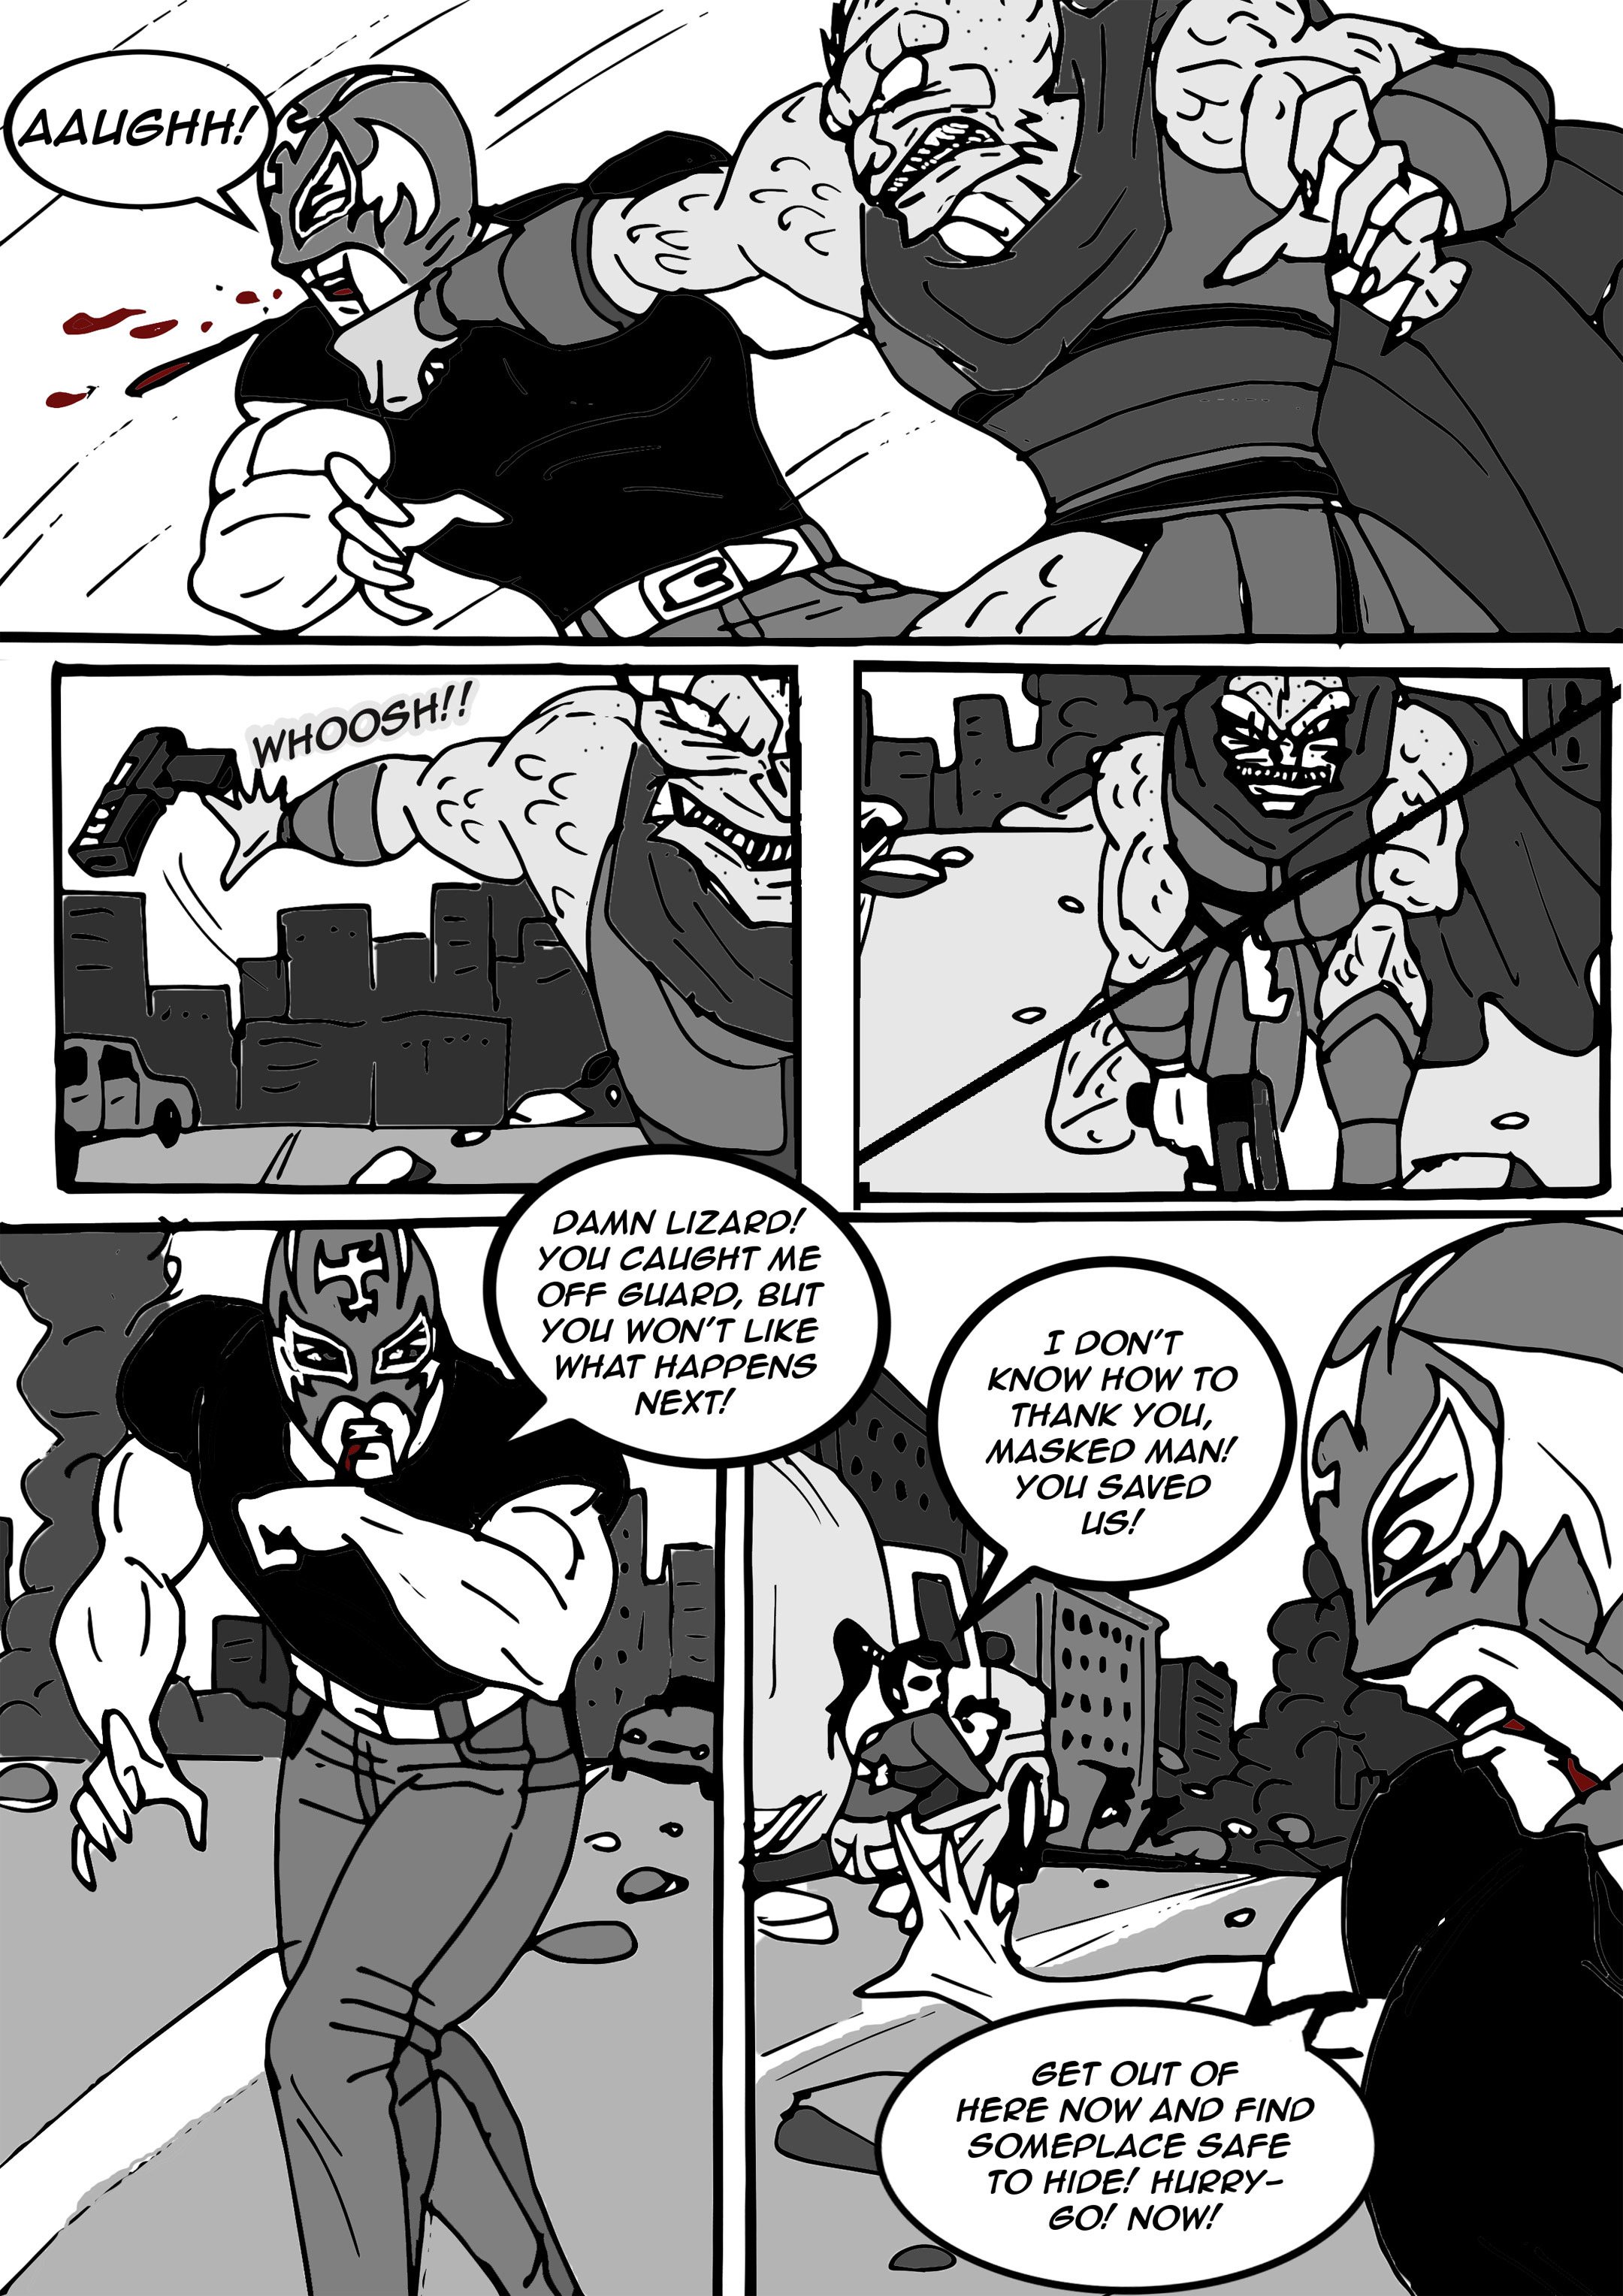 Read online Aski vs. The Draconians comic -  Issue #1 - 18